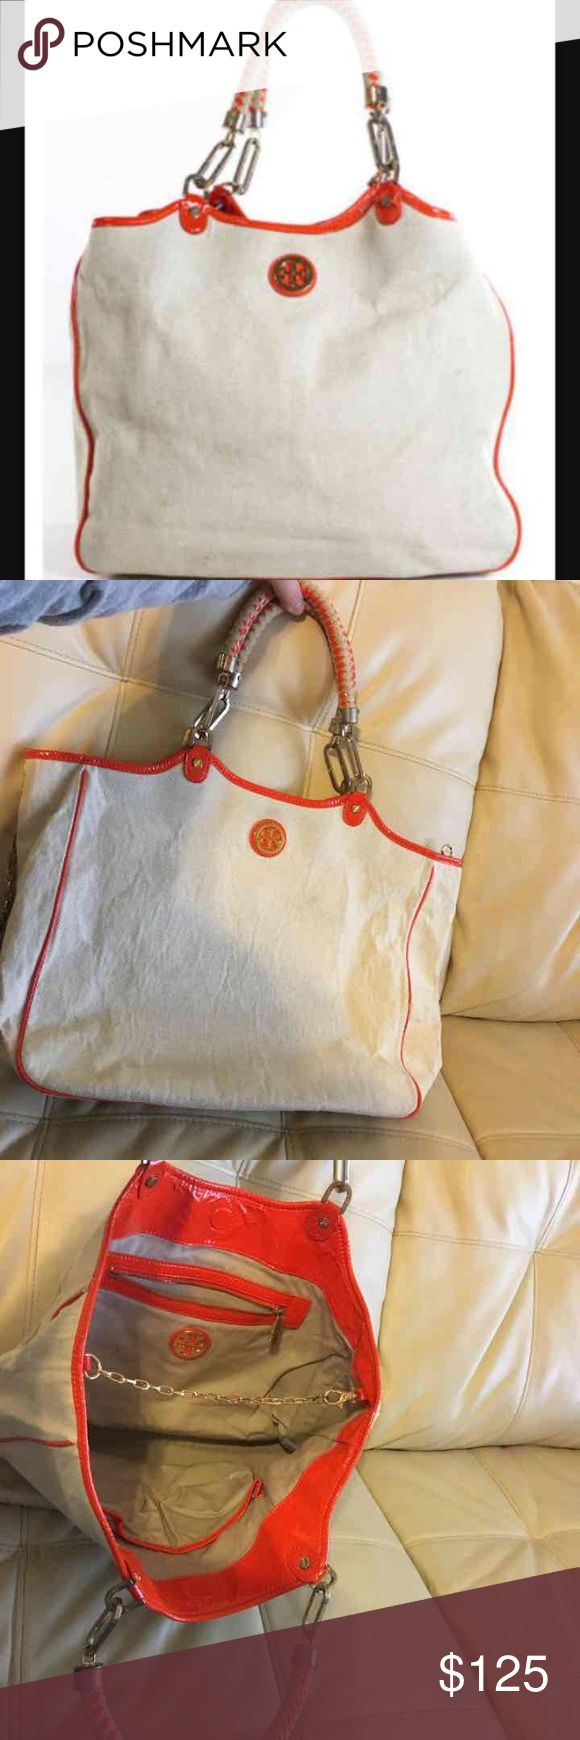 🙀Tory Burch Climbing Rope Channing Tote😻 Tory Burch climbing rope Channing tote. 16x11 very roomy. Some wear on the metal I'm sure it can be polished up see pics.Authentic. Tory Burch Bags Totes